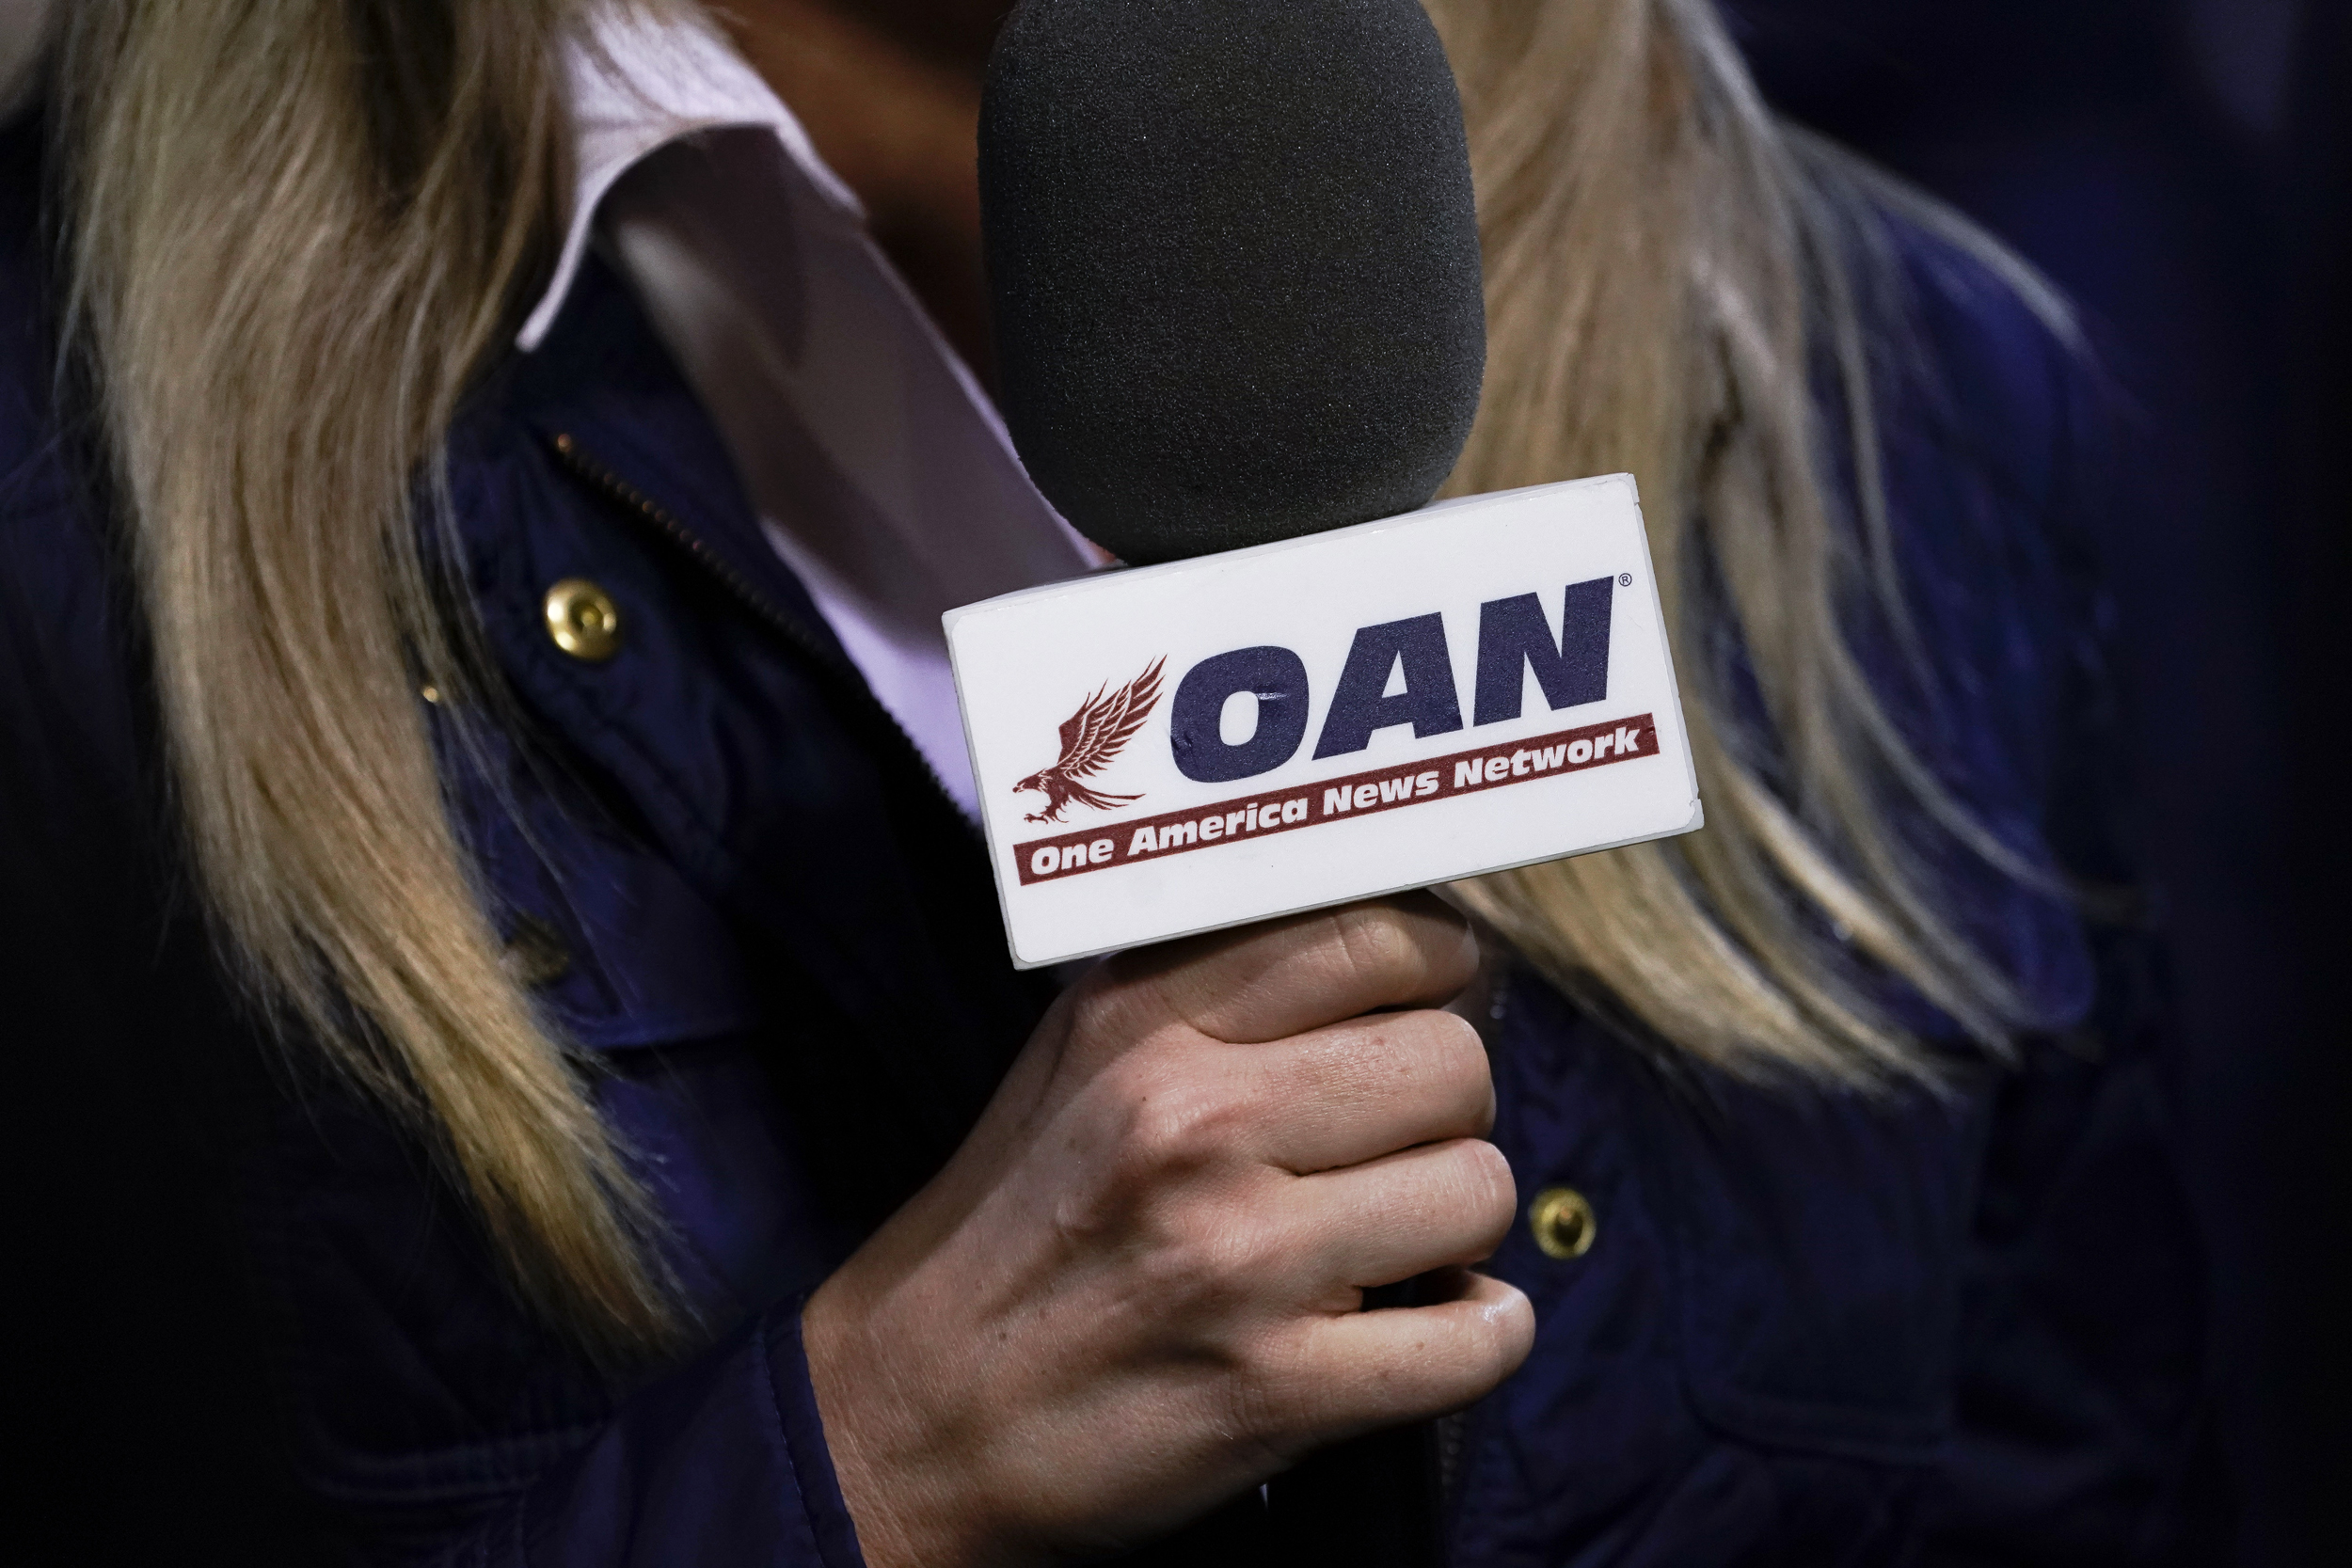 Dominion sues Newsmax and OANN, alleging deliberate disinformation on 2020 election